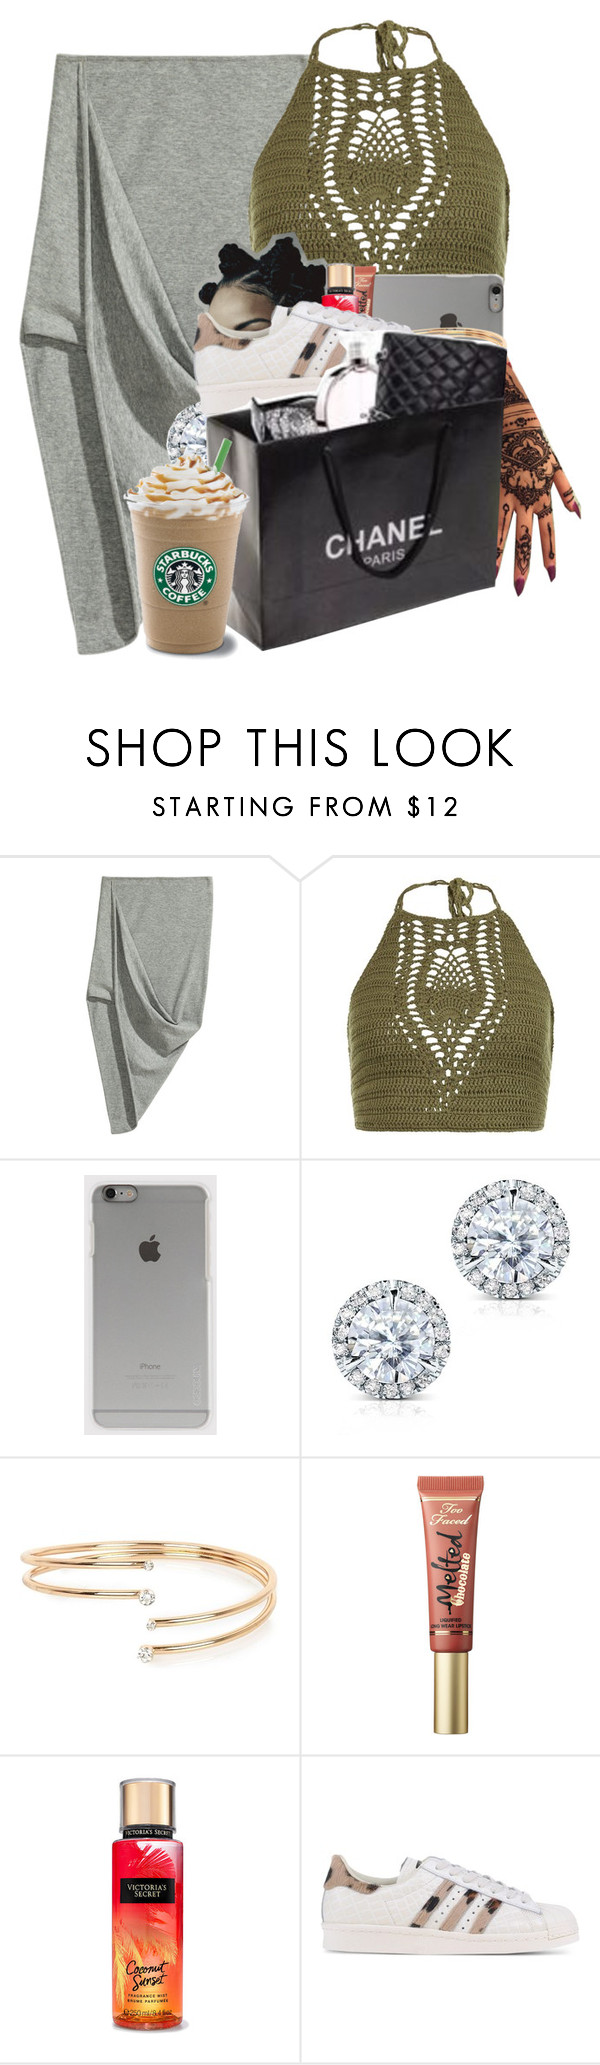 """""""Four Five Seconds"""" by denise-loveable-bray ❤ liked on Polyvore featuring New Look, Incase, Kobelli, River Island, Too Faced Cosmetics and adidas Originals"""